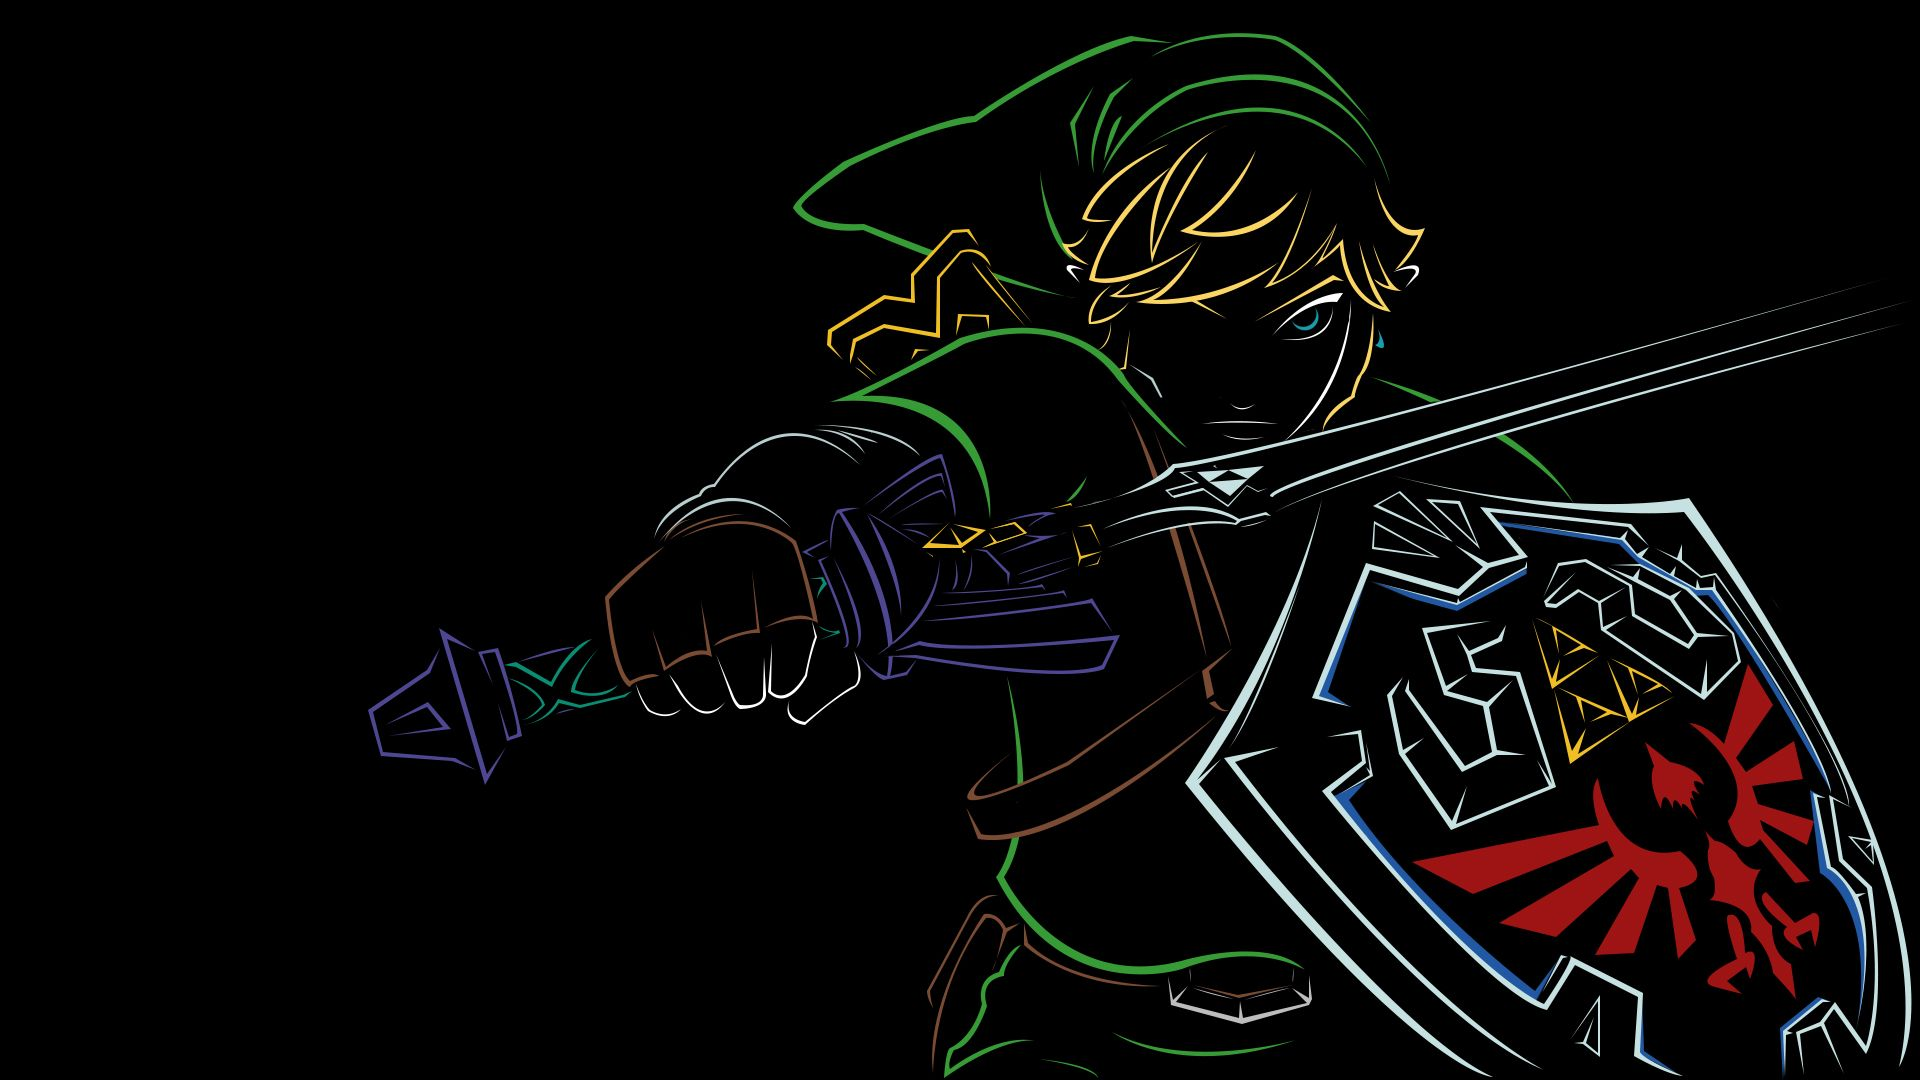 Awesome Zelda Wallpapers   Top Awesome Zelda Backgrounds 1920x1080